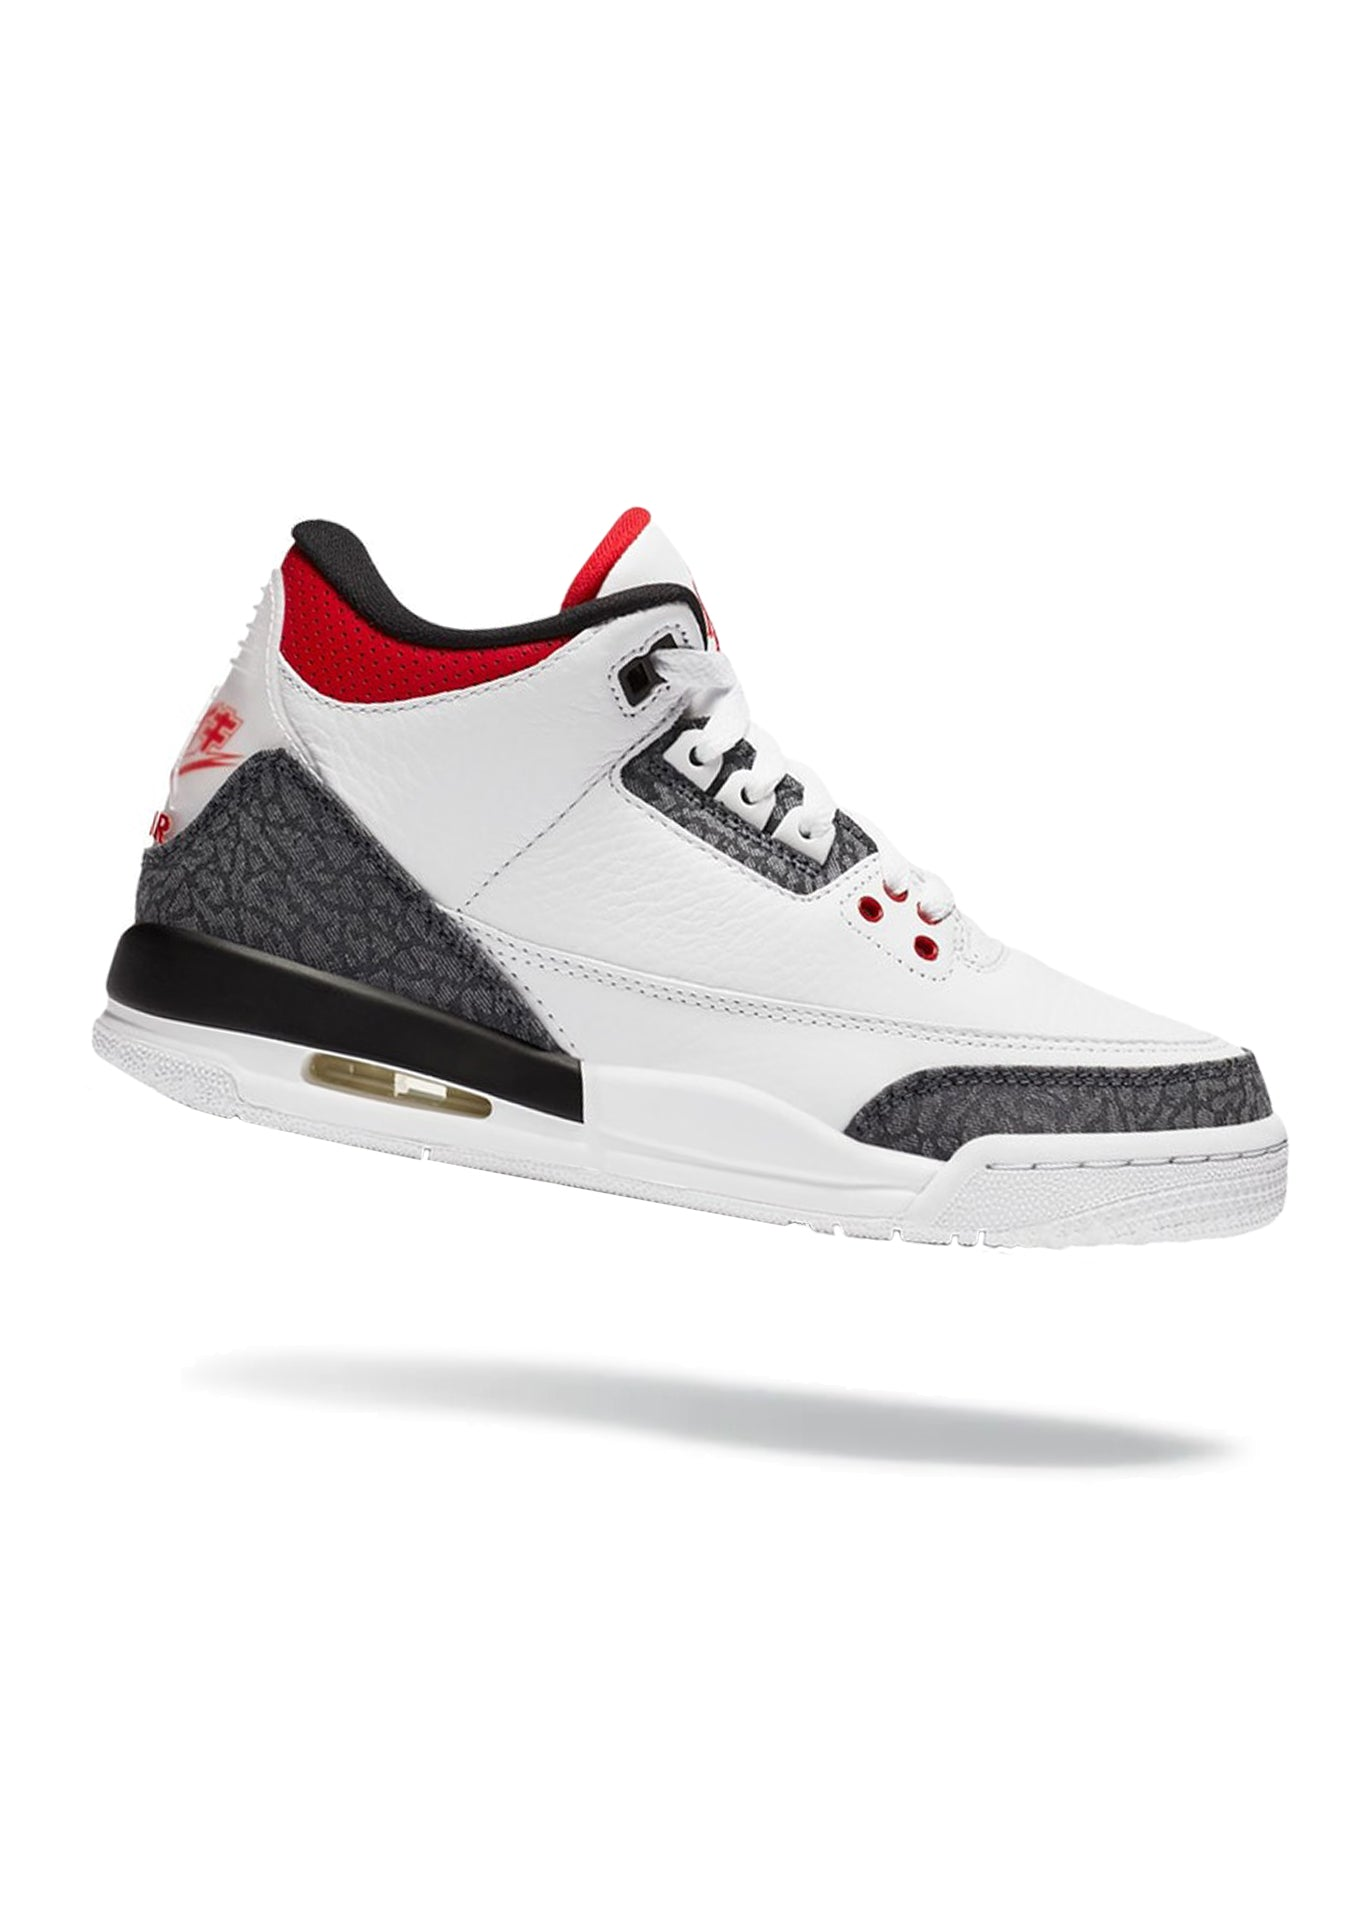 Jordan 3 Retro SE-T CO JP Fire Red Denim